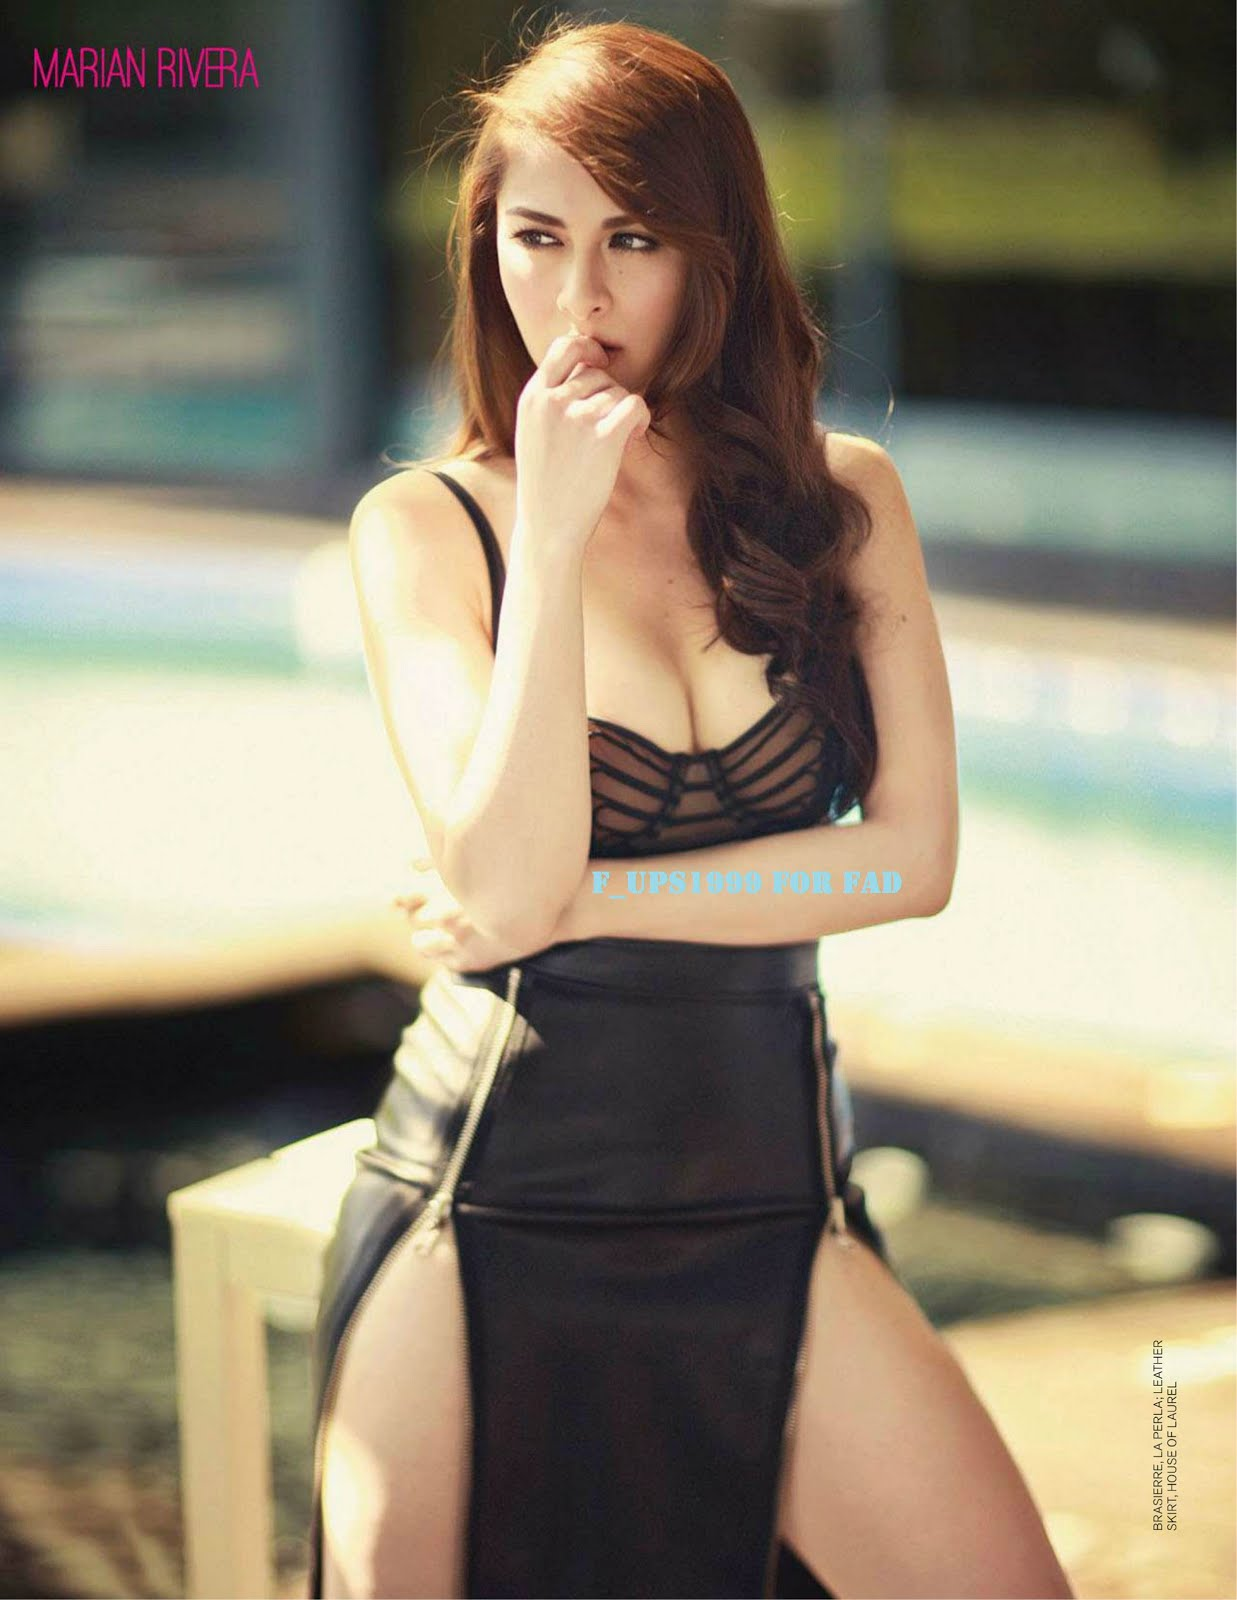 Right. good Marian rivera fhm cover can